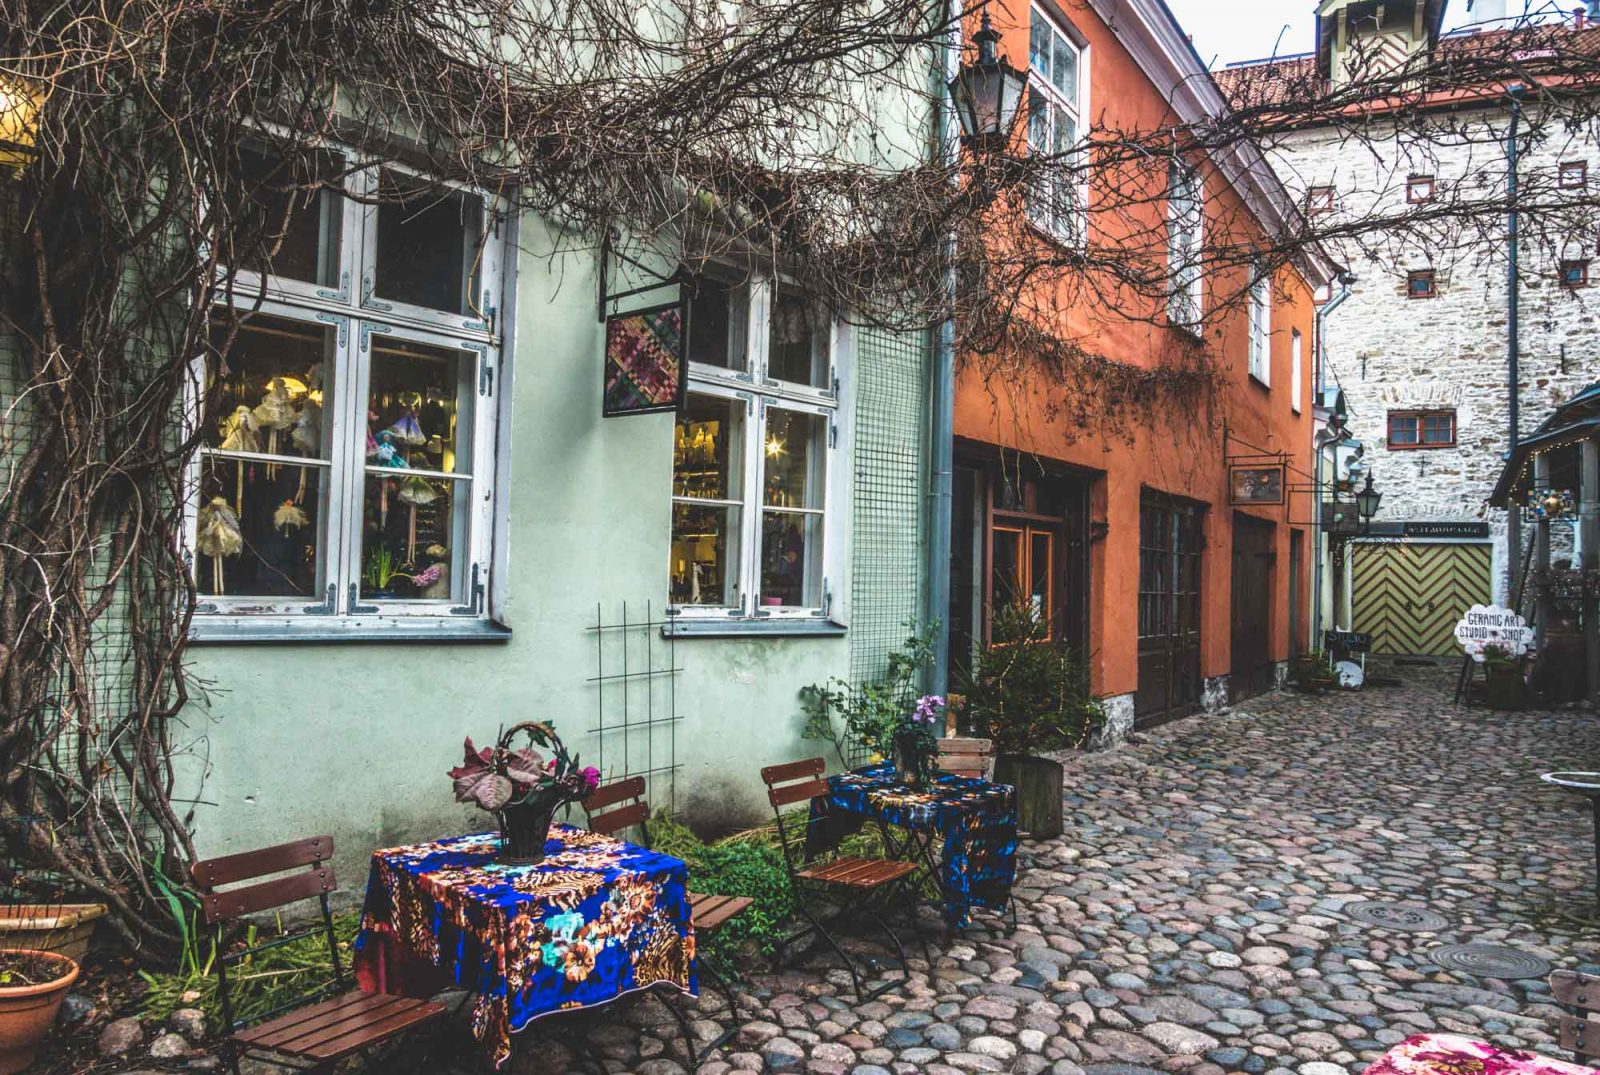 Things to do in Tallinn: Estonia Old Town